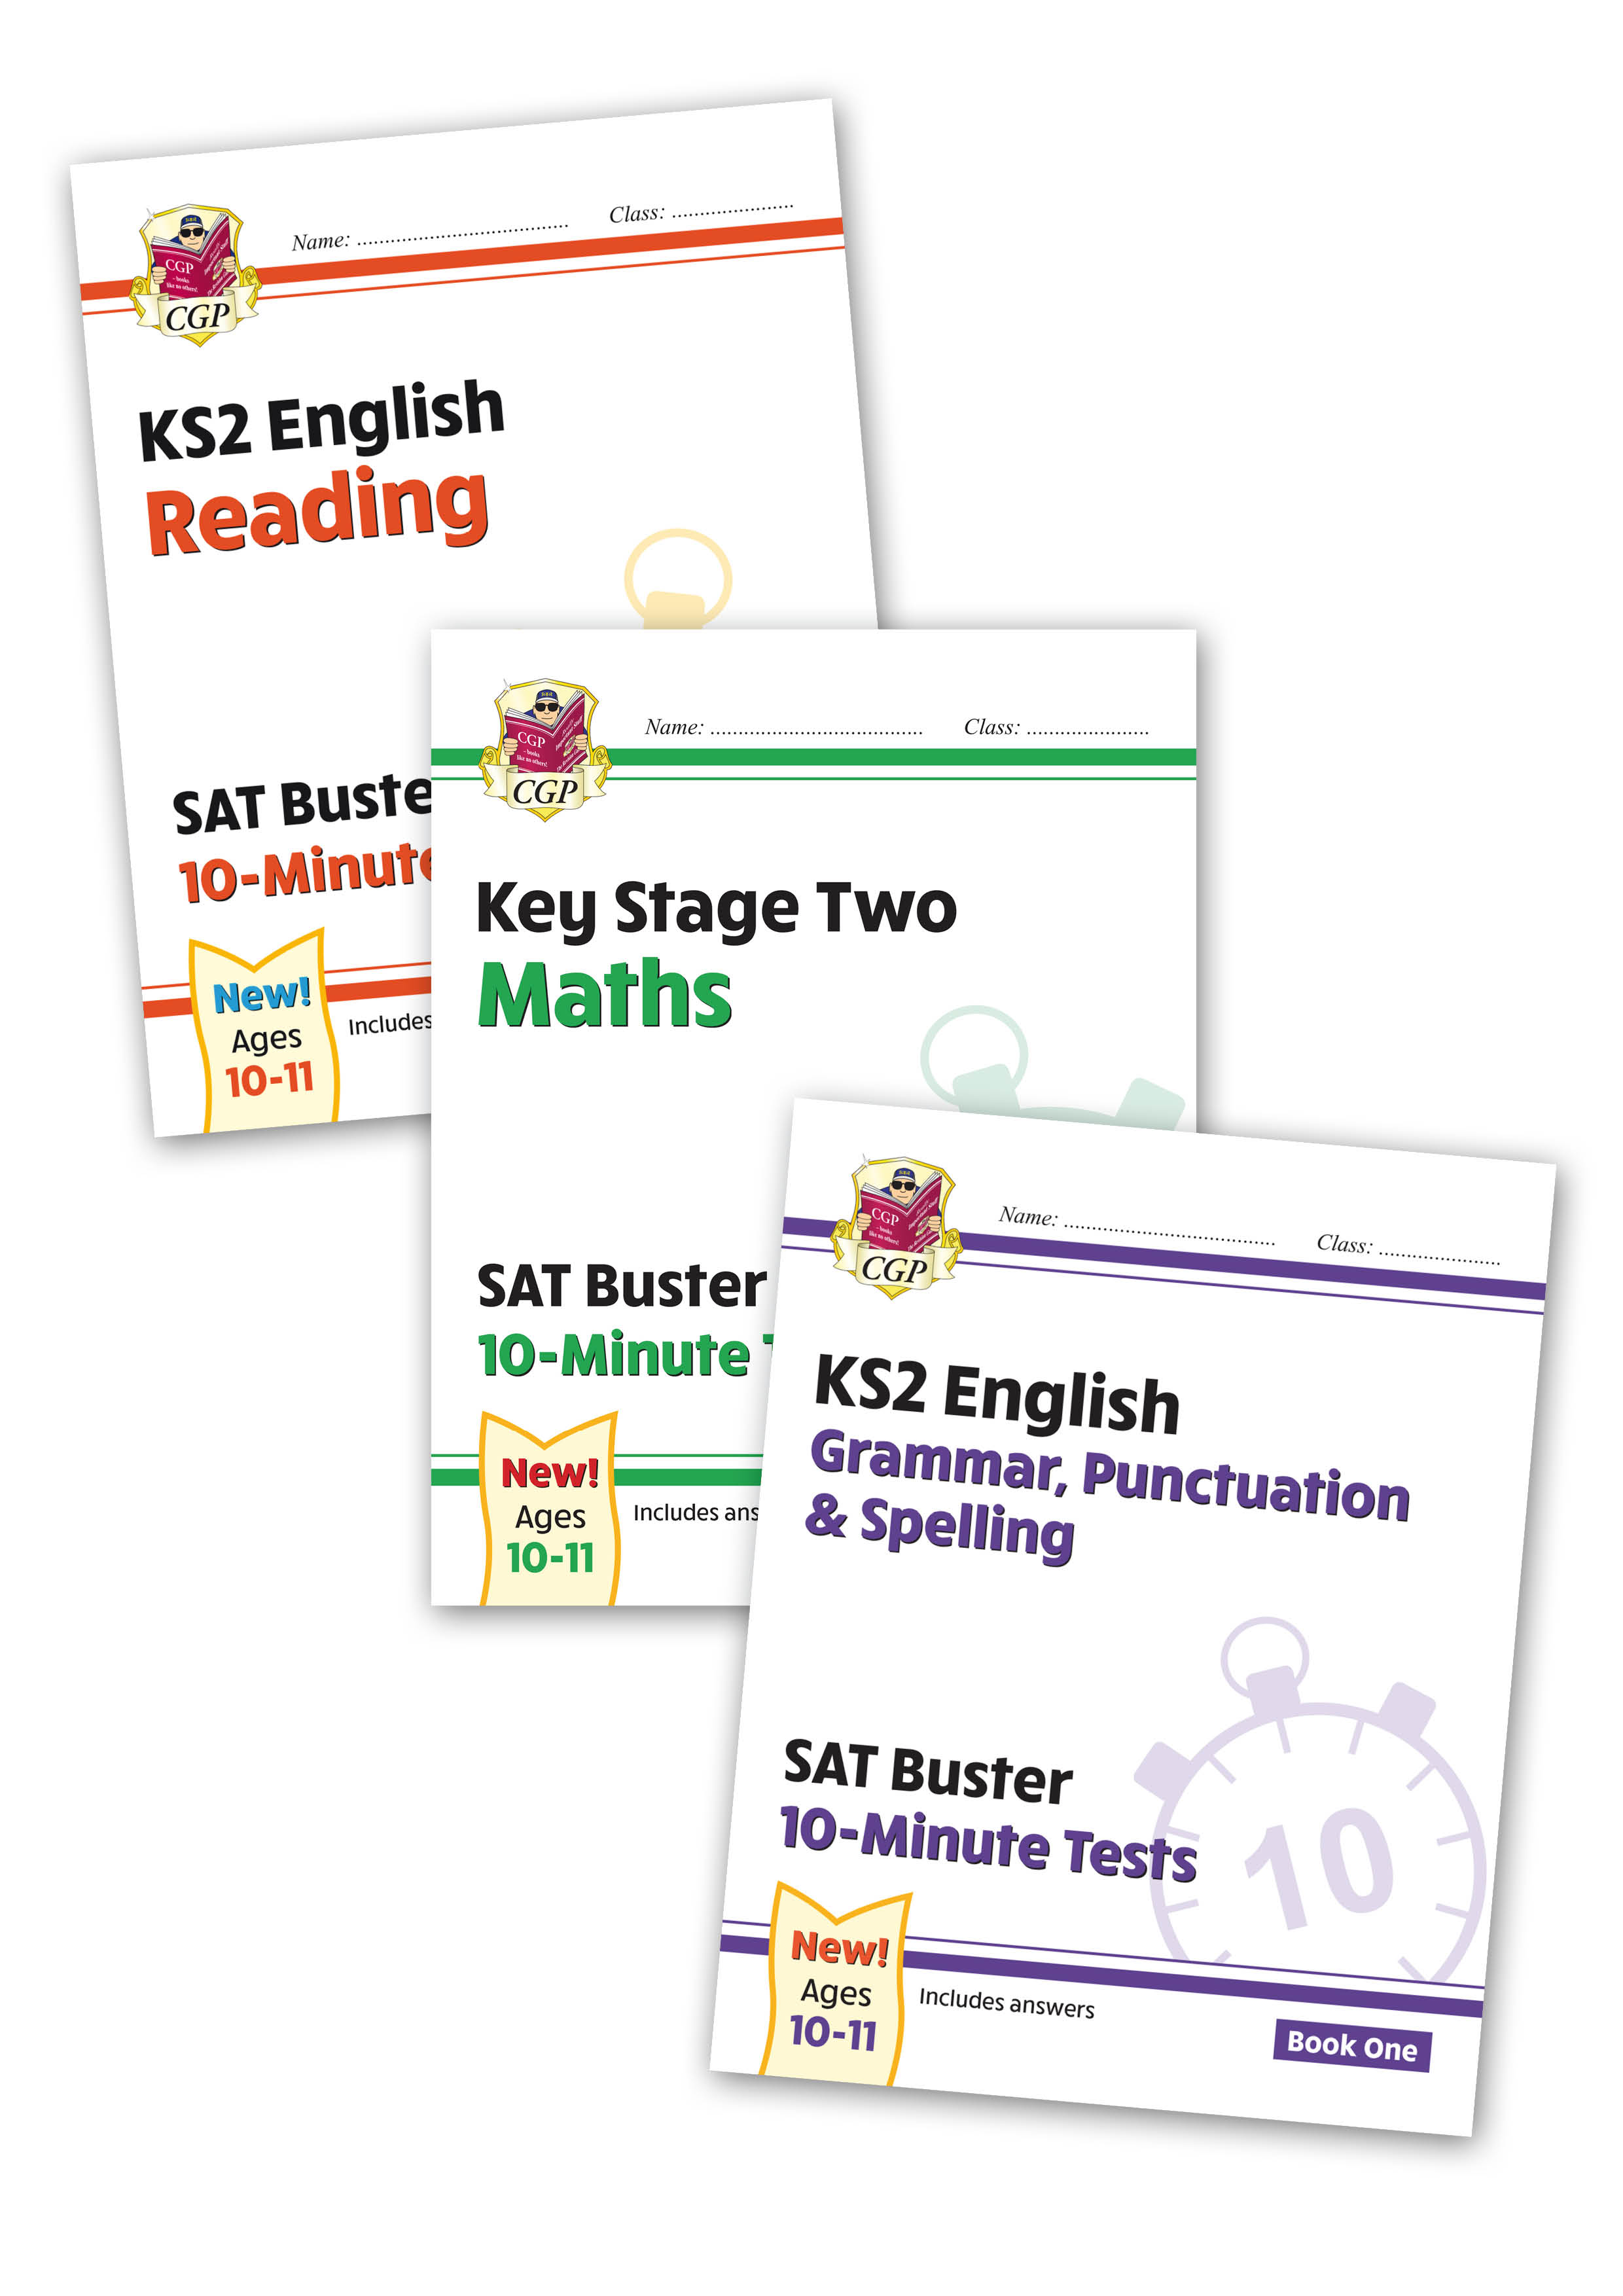 EMXB24 - New Complete KS2 Maths and English 10-Minute Test SAT Buster Book 1 Bundle (for the 2021 te